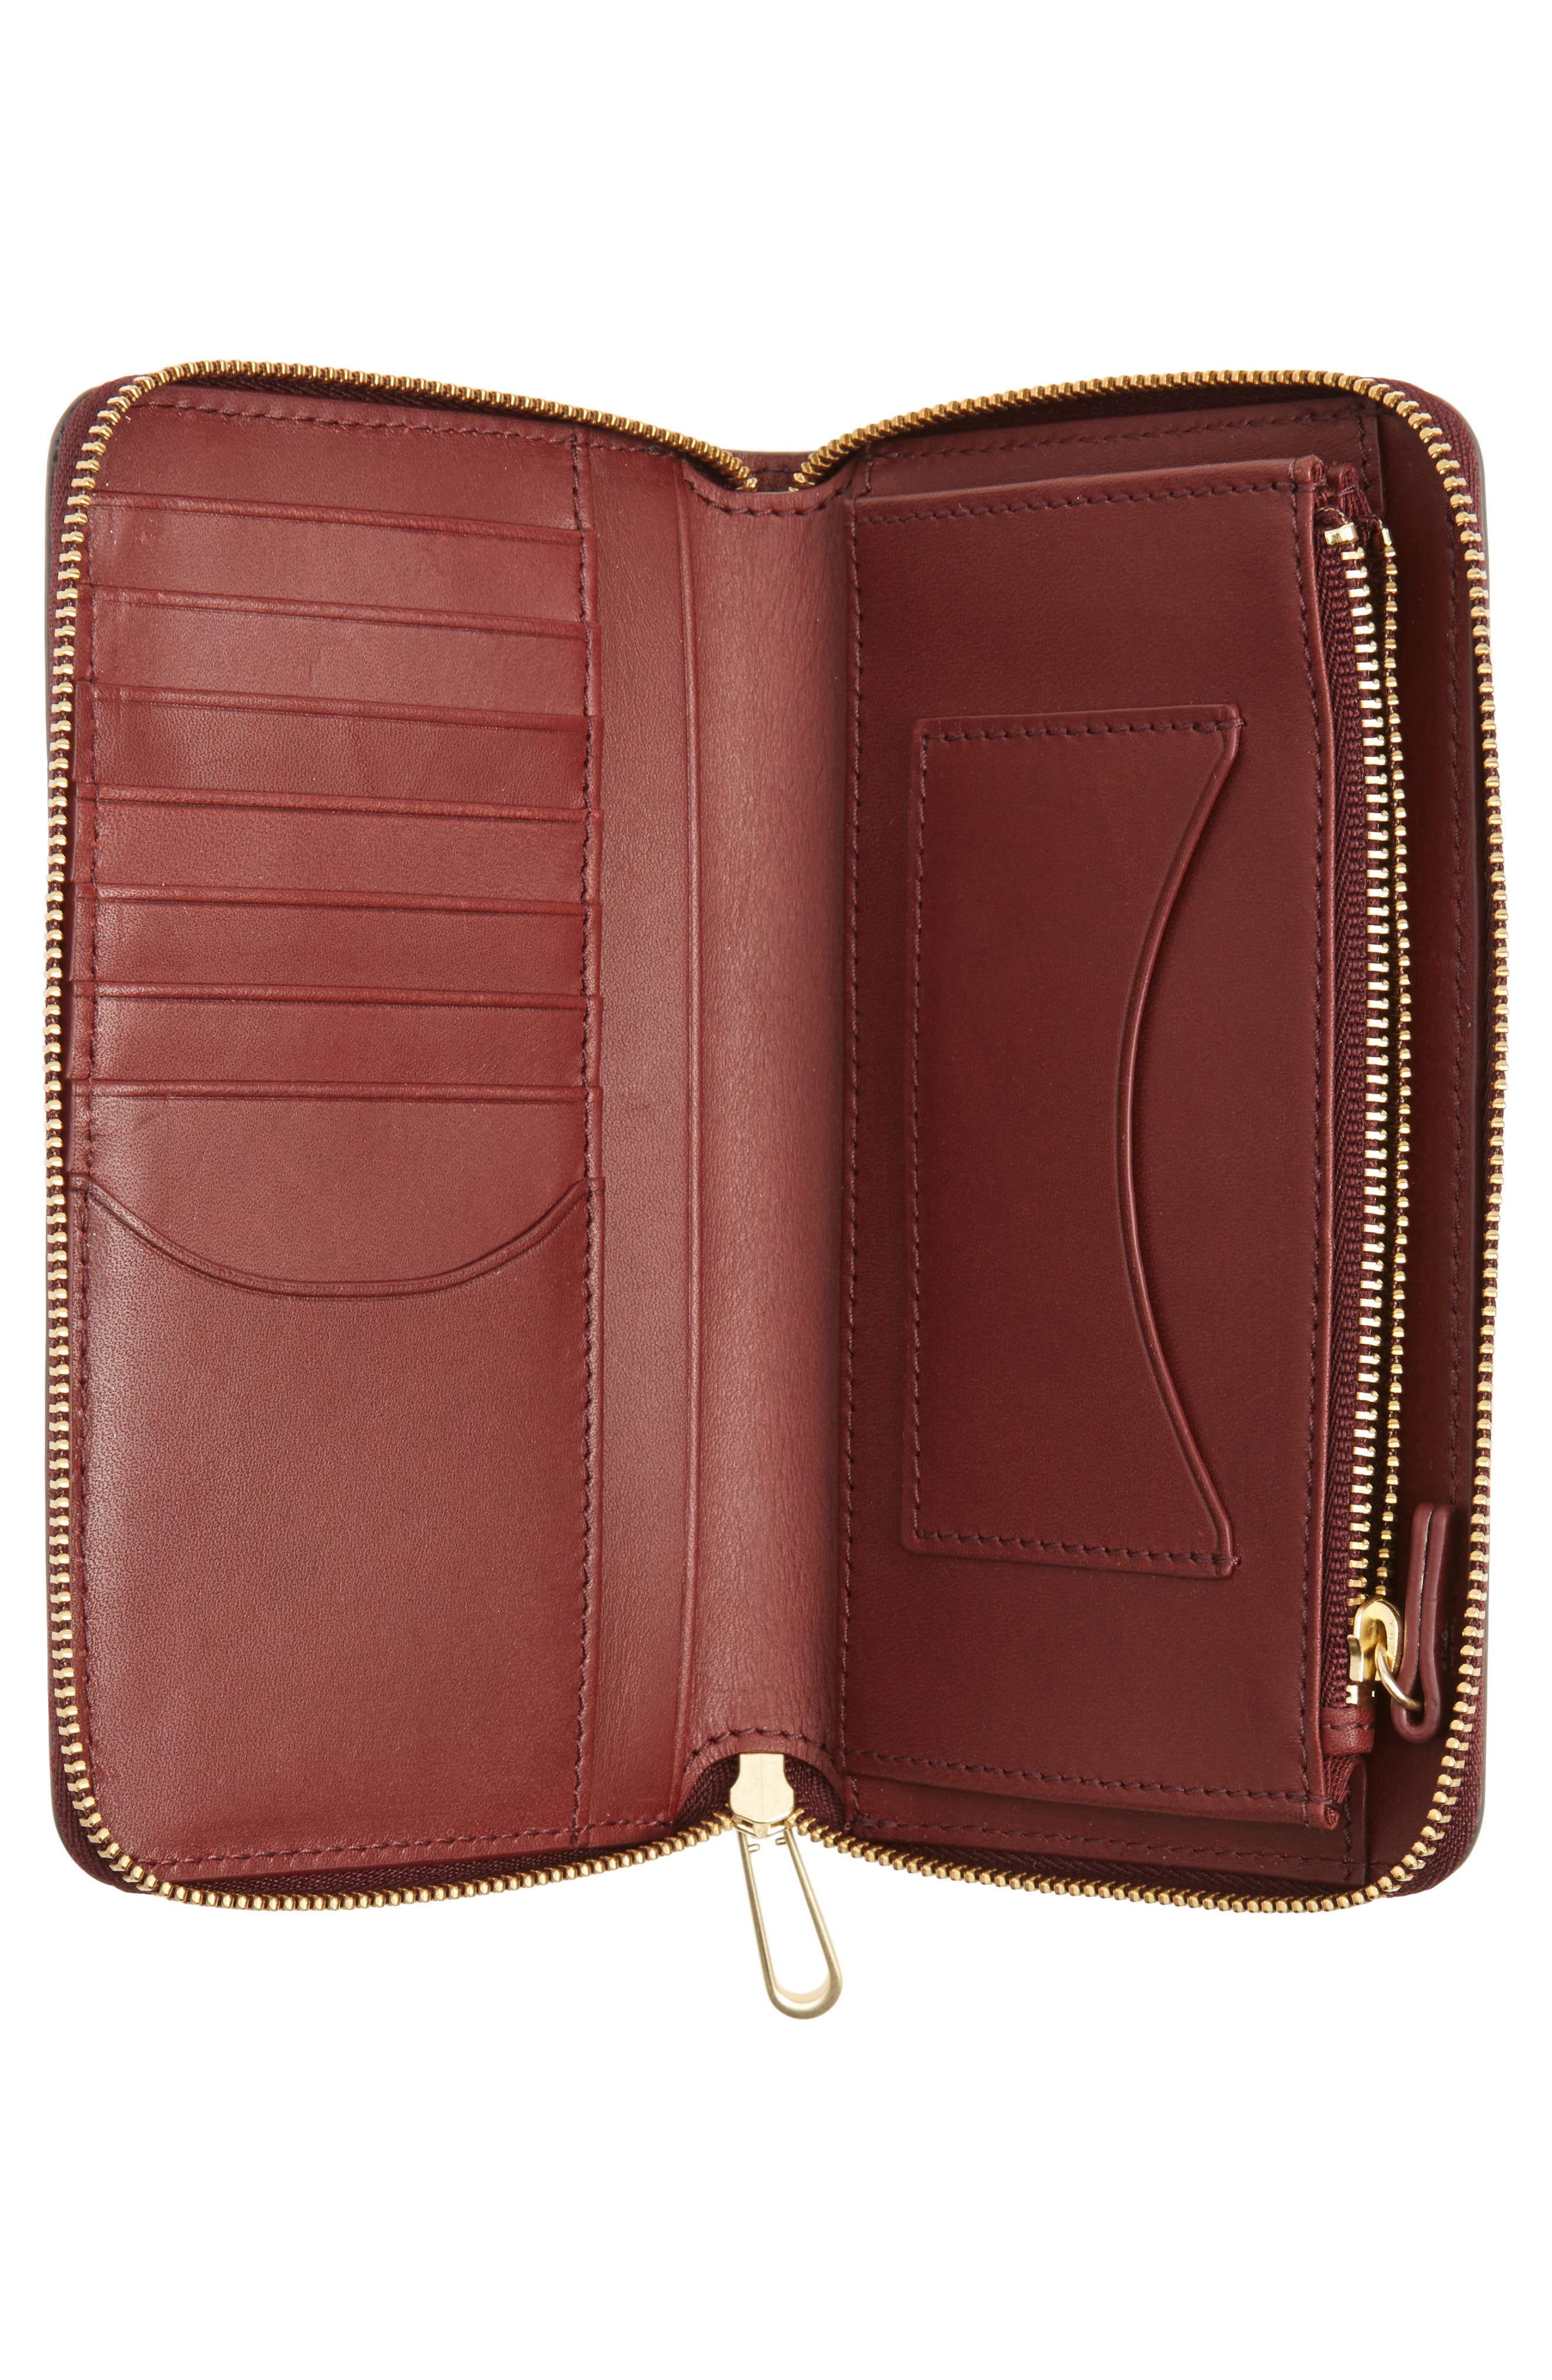 Compact Continental Wallet,                             Alternate thumbnail 4, color,                             021